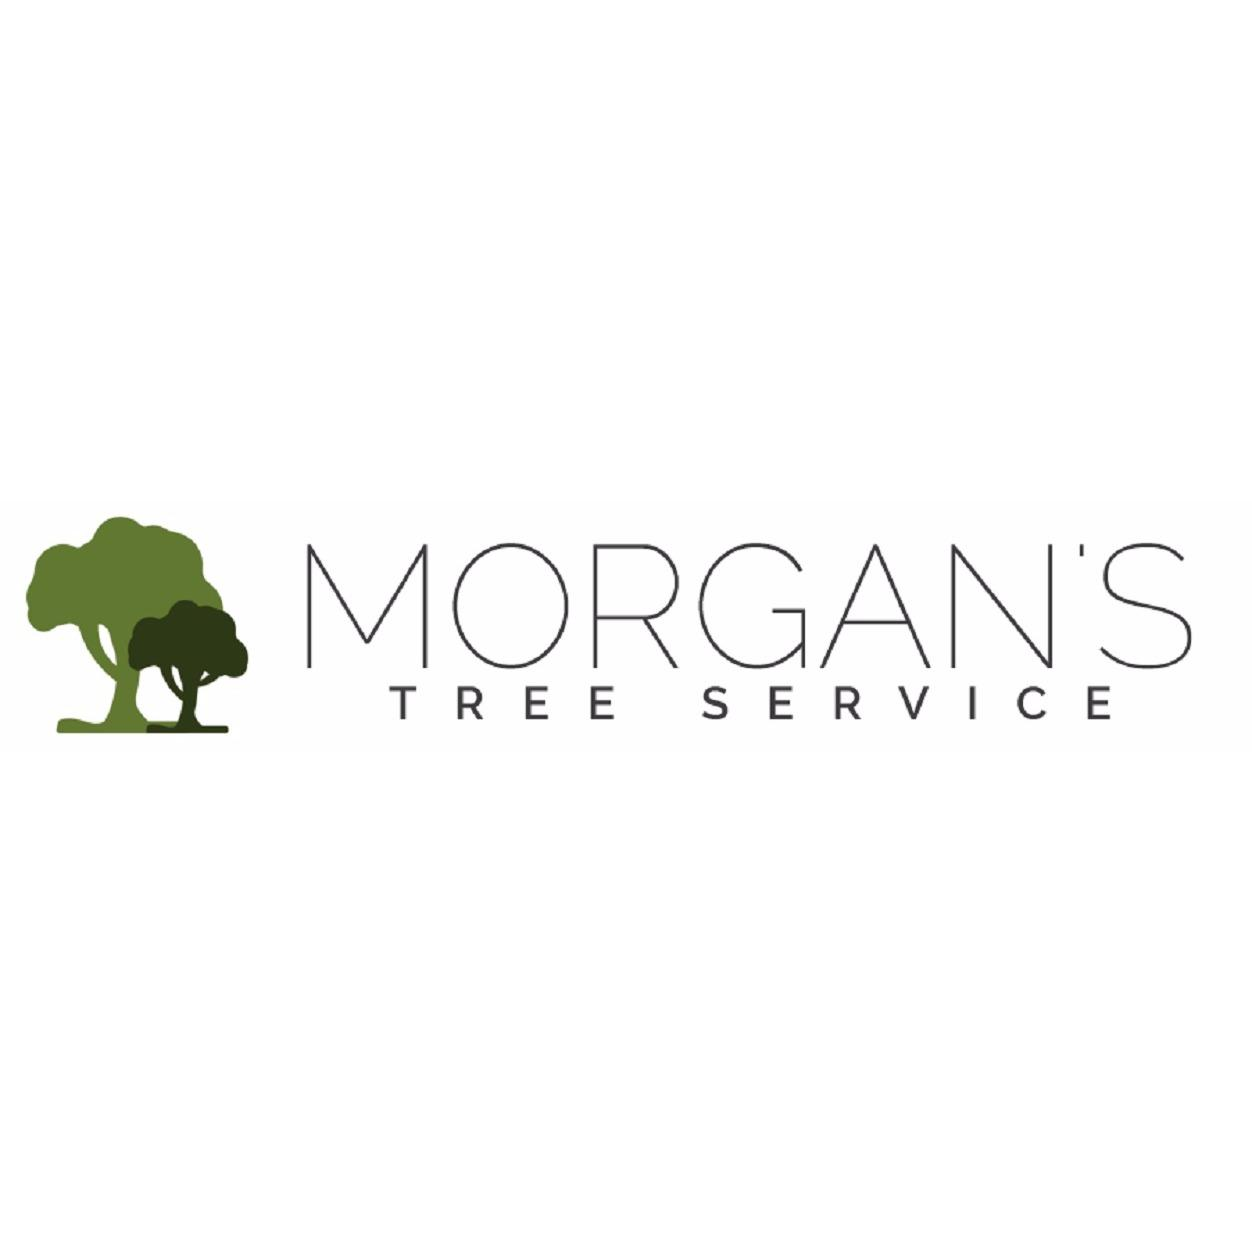 Morgan's Tree Service